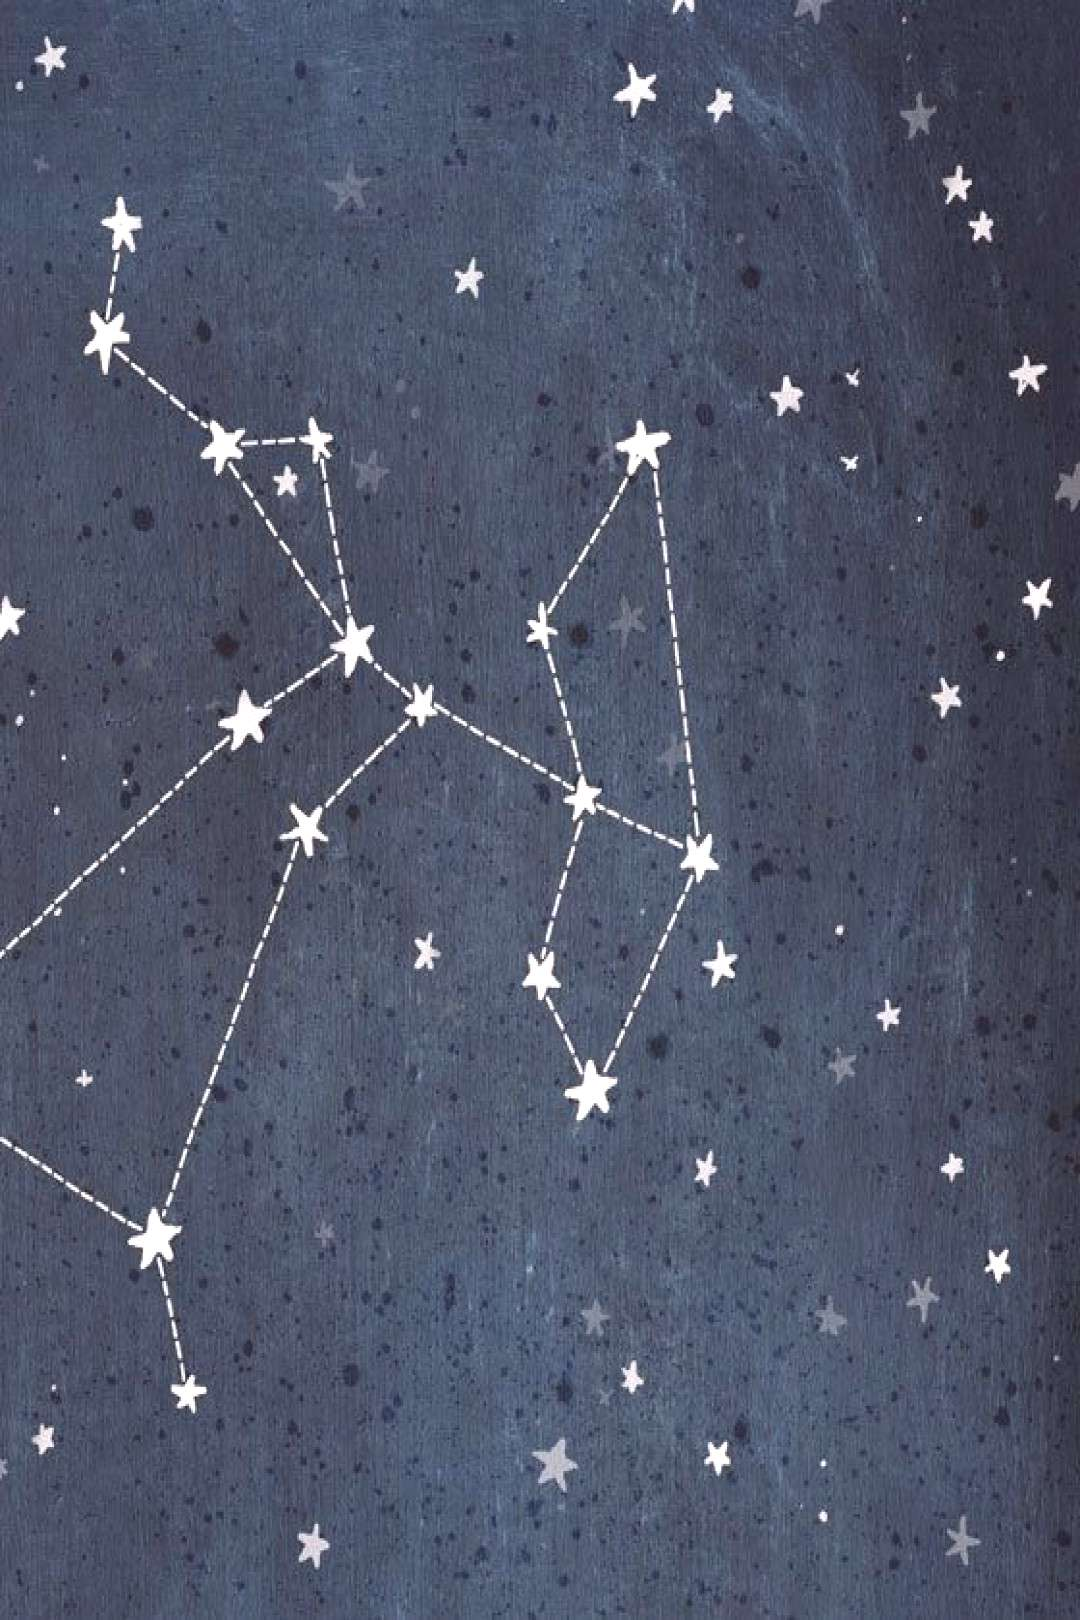 Astrology Ceiling Constellations ; Constellations On Ceiling astrology ceiling constellations & con